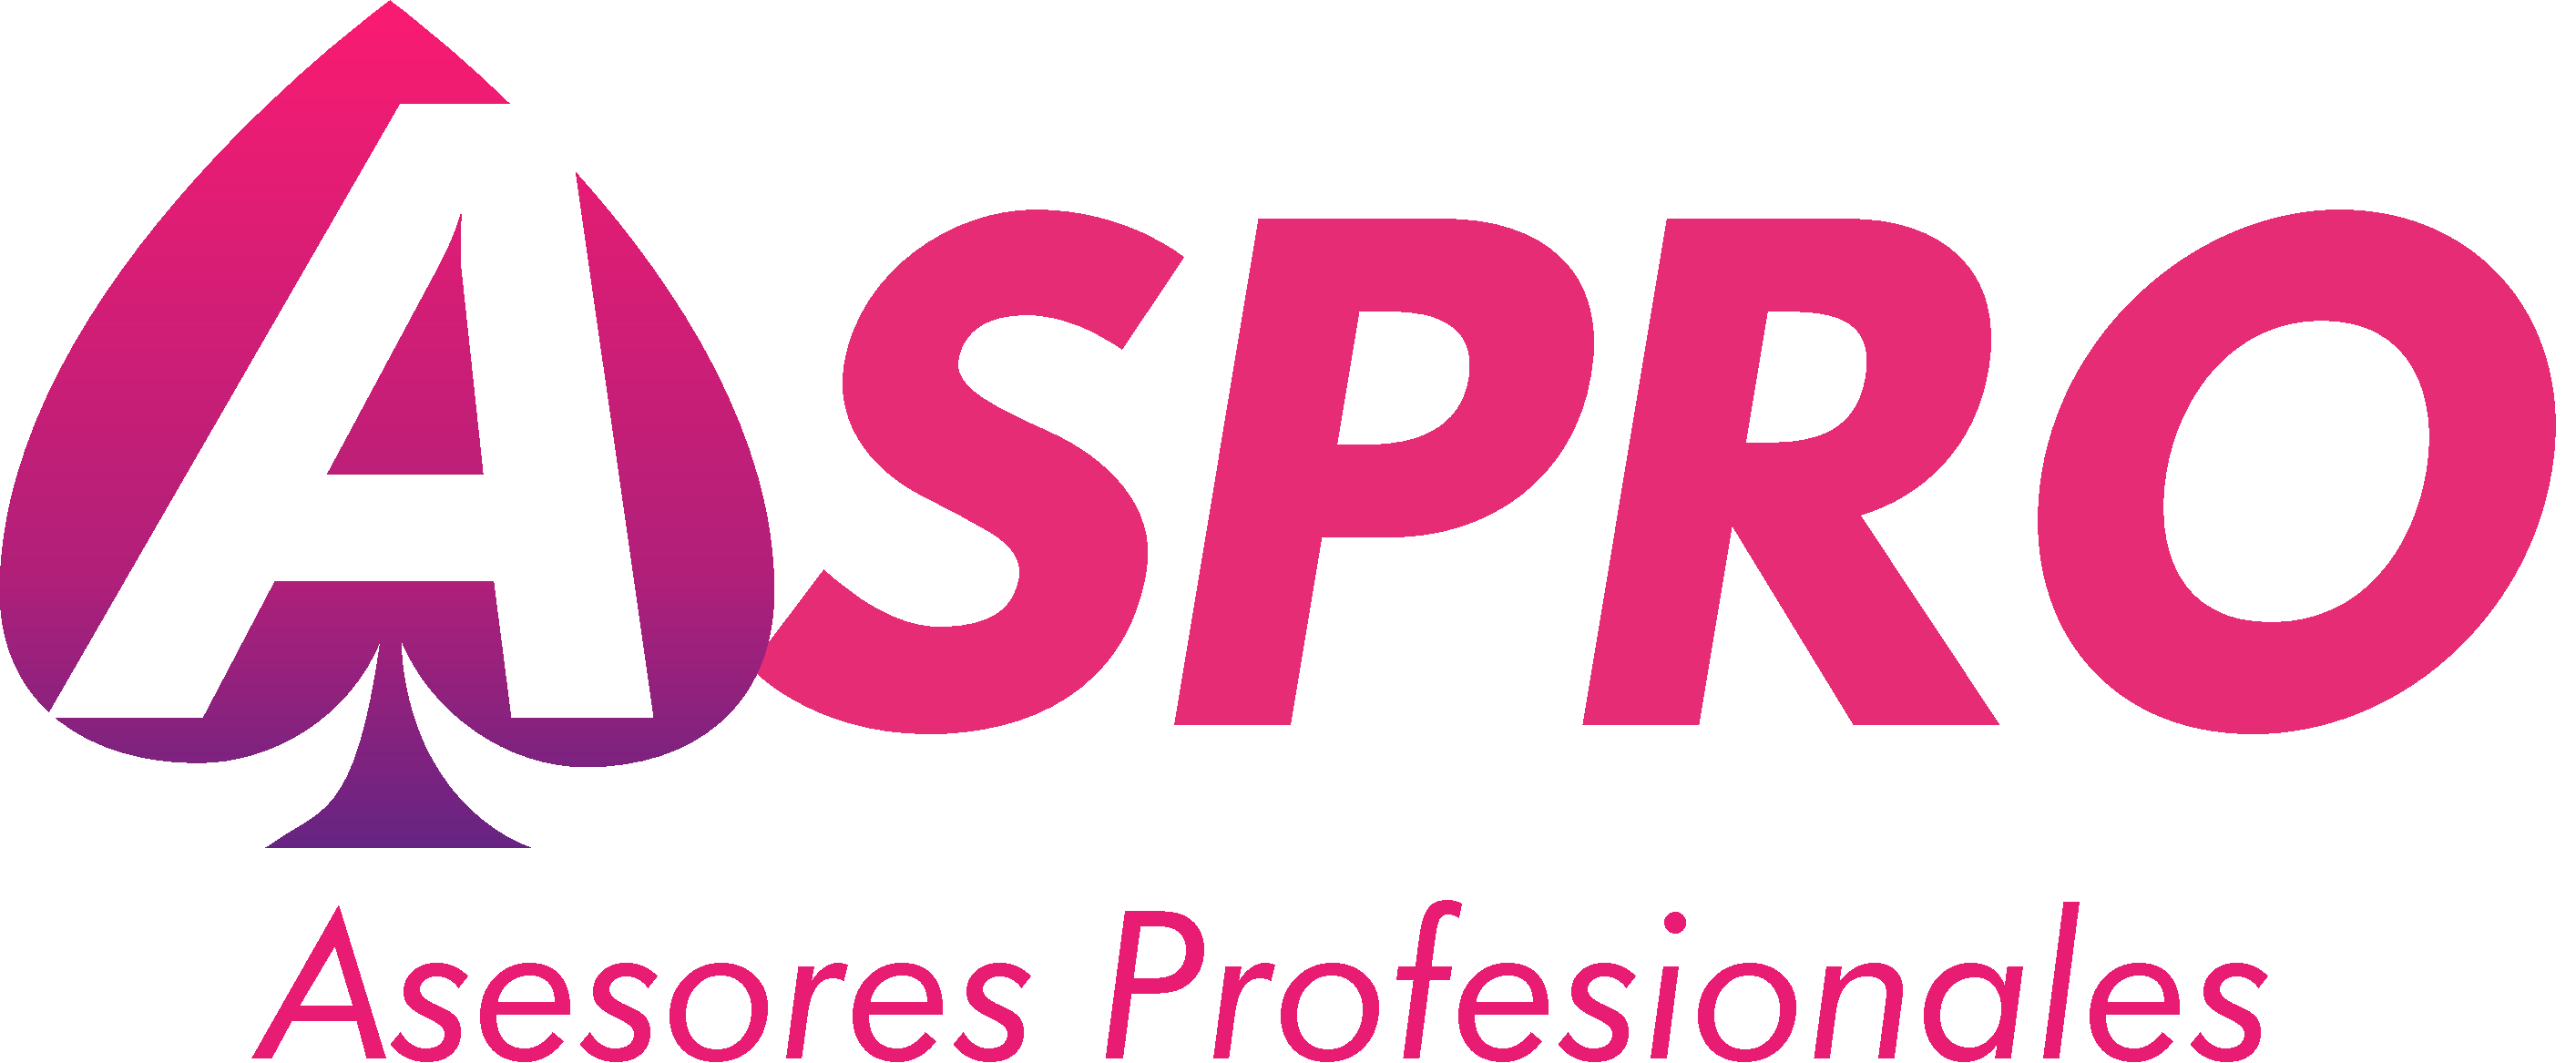 ASPRO - Asesores Profesionales